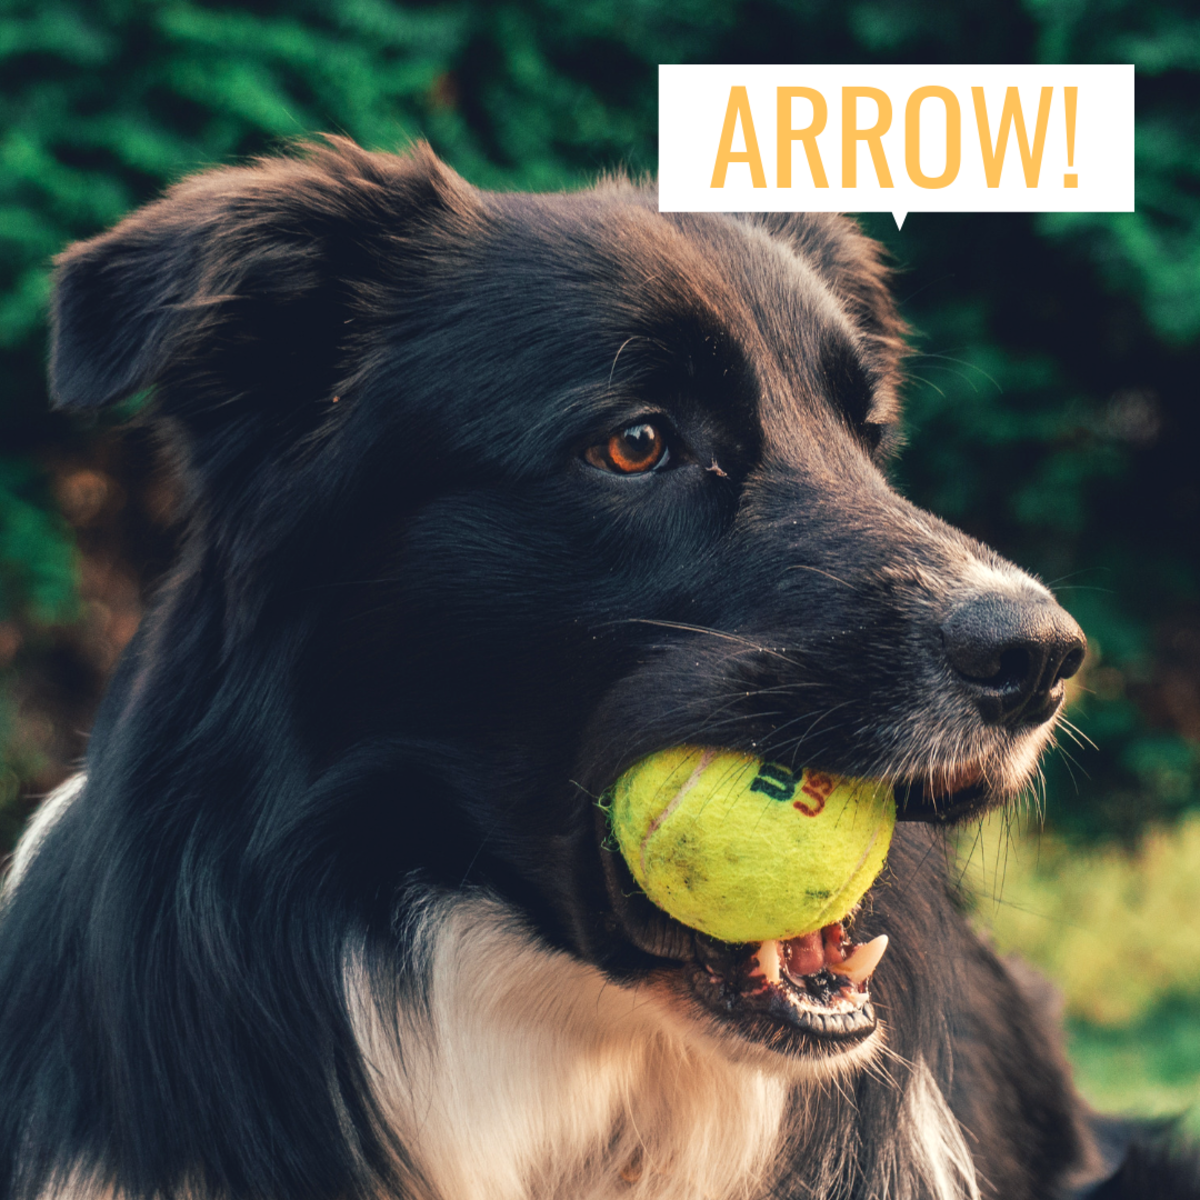 Arrow makes a great name for a Border Collie.